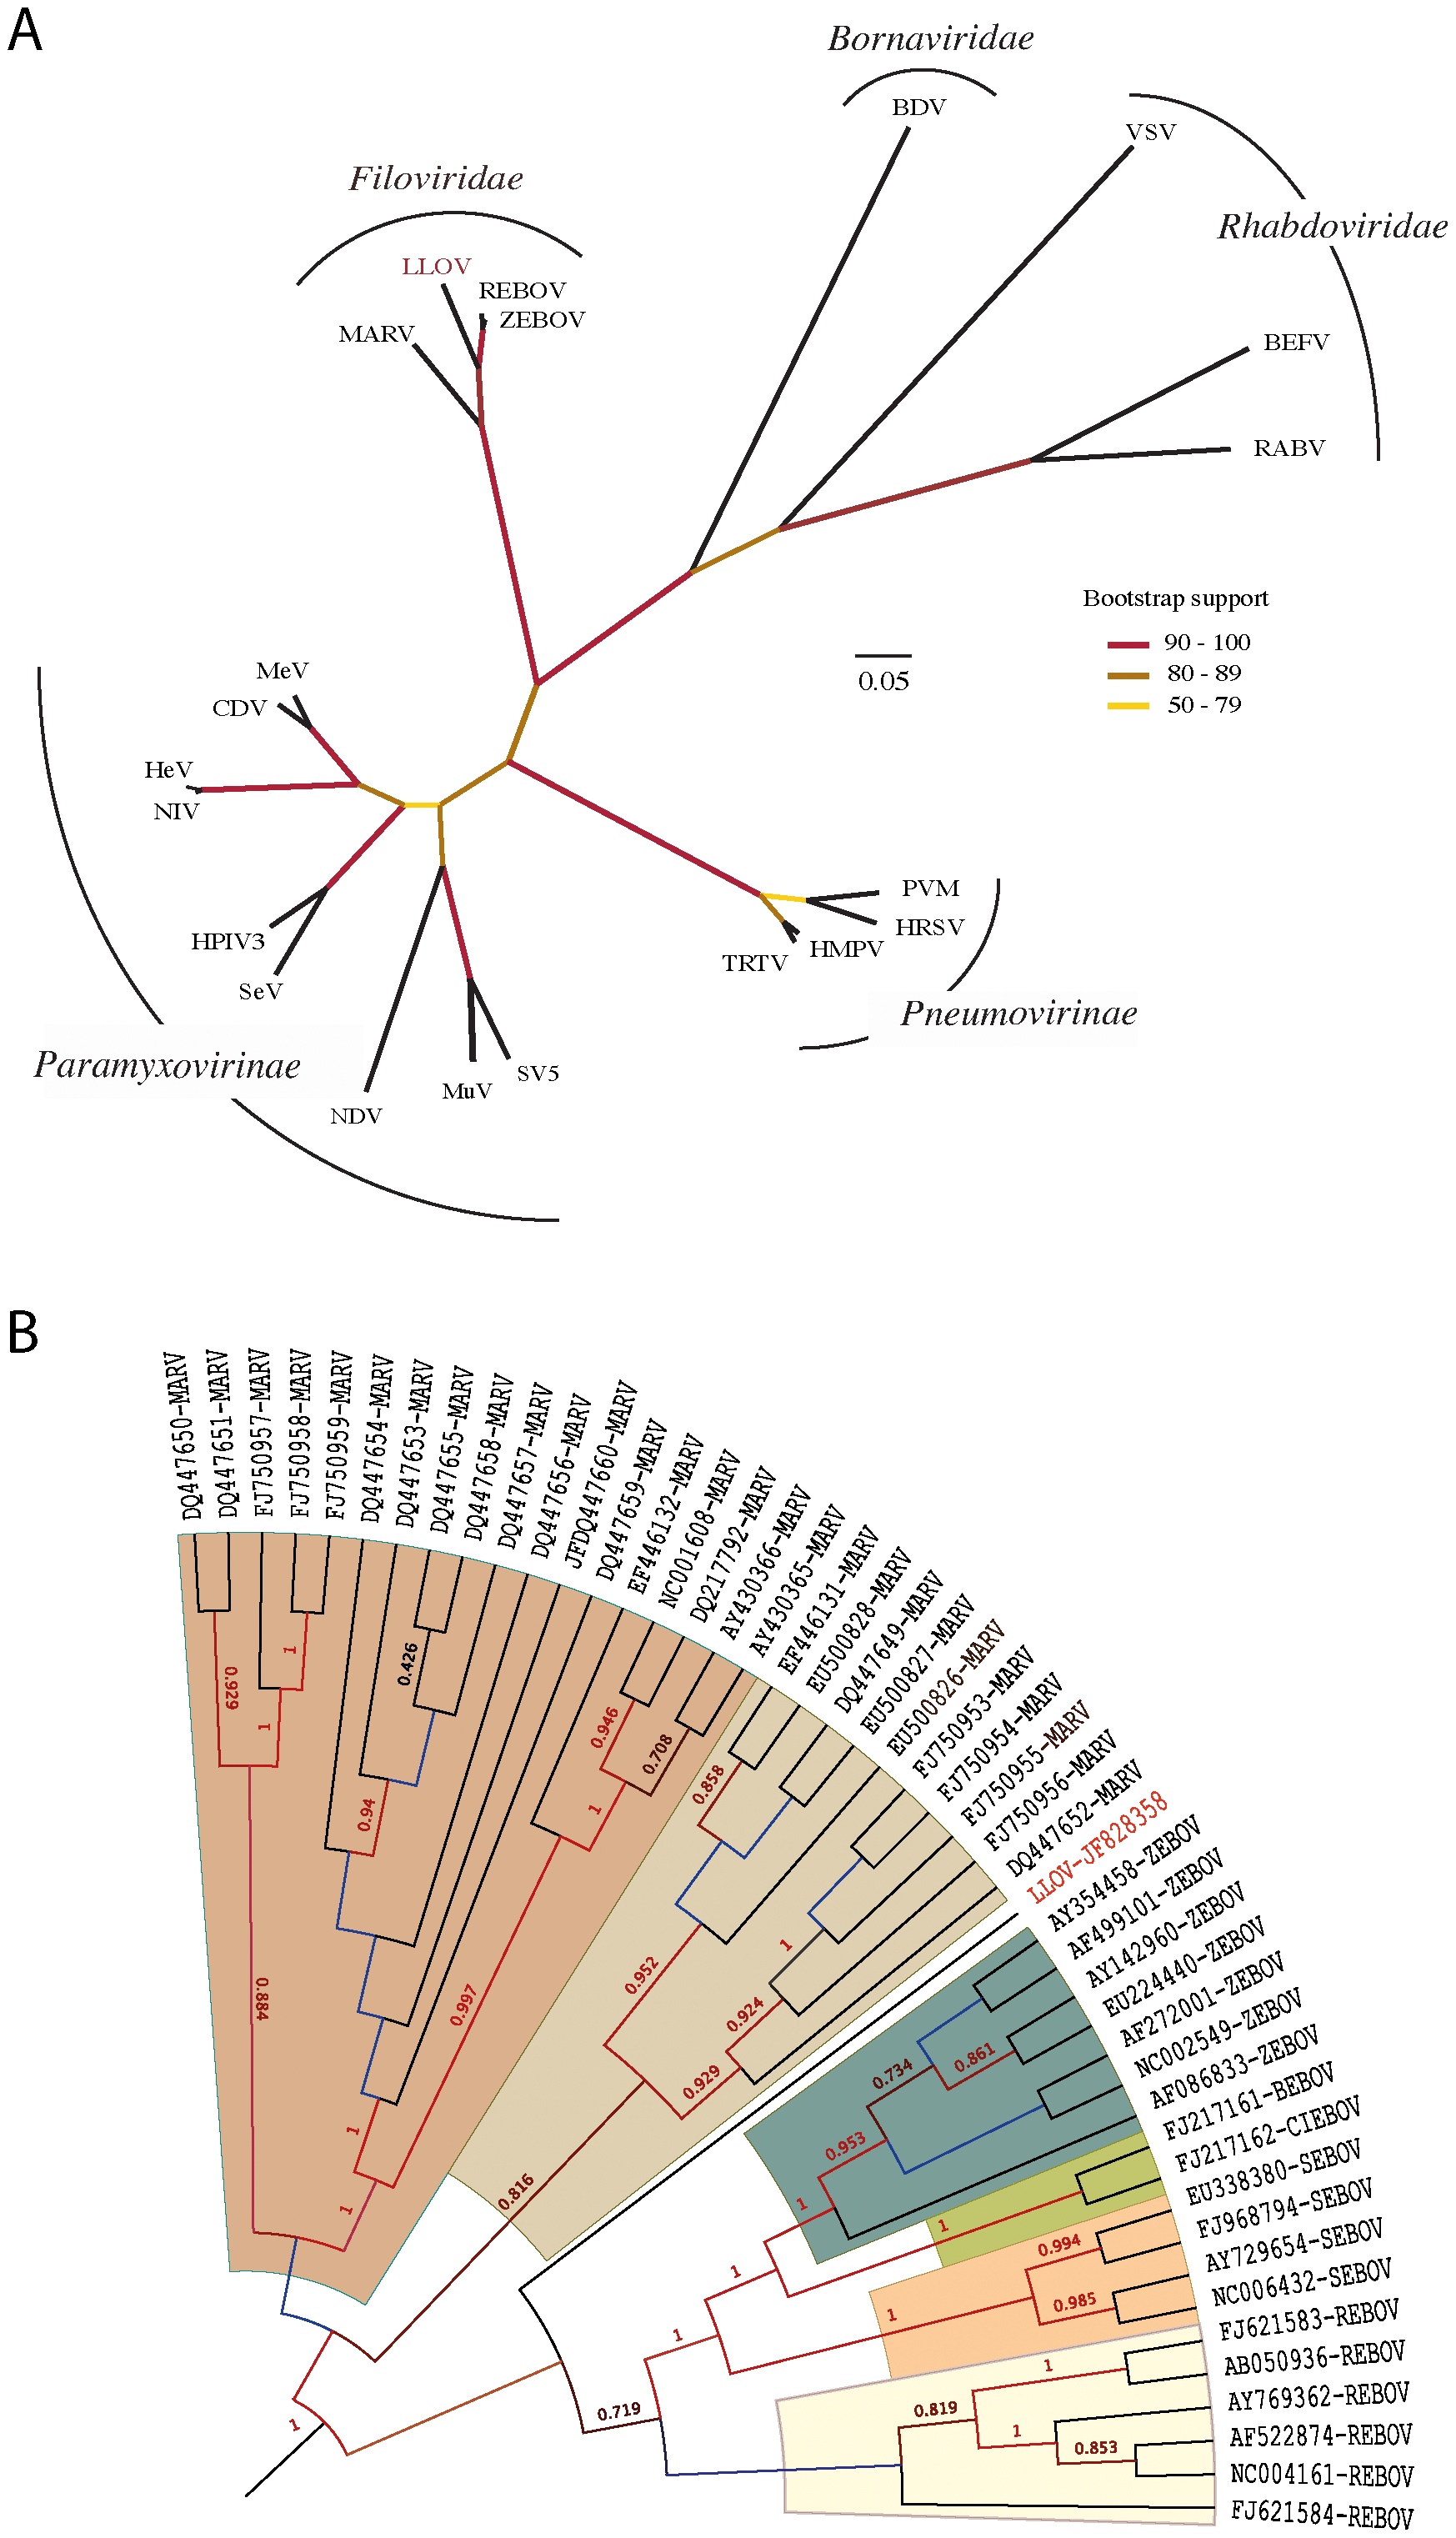 Phylogenetic analysis of LLOV.